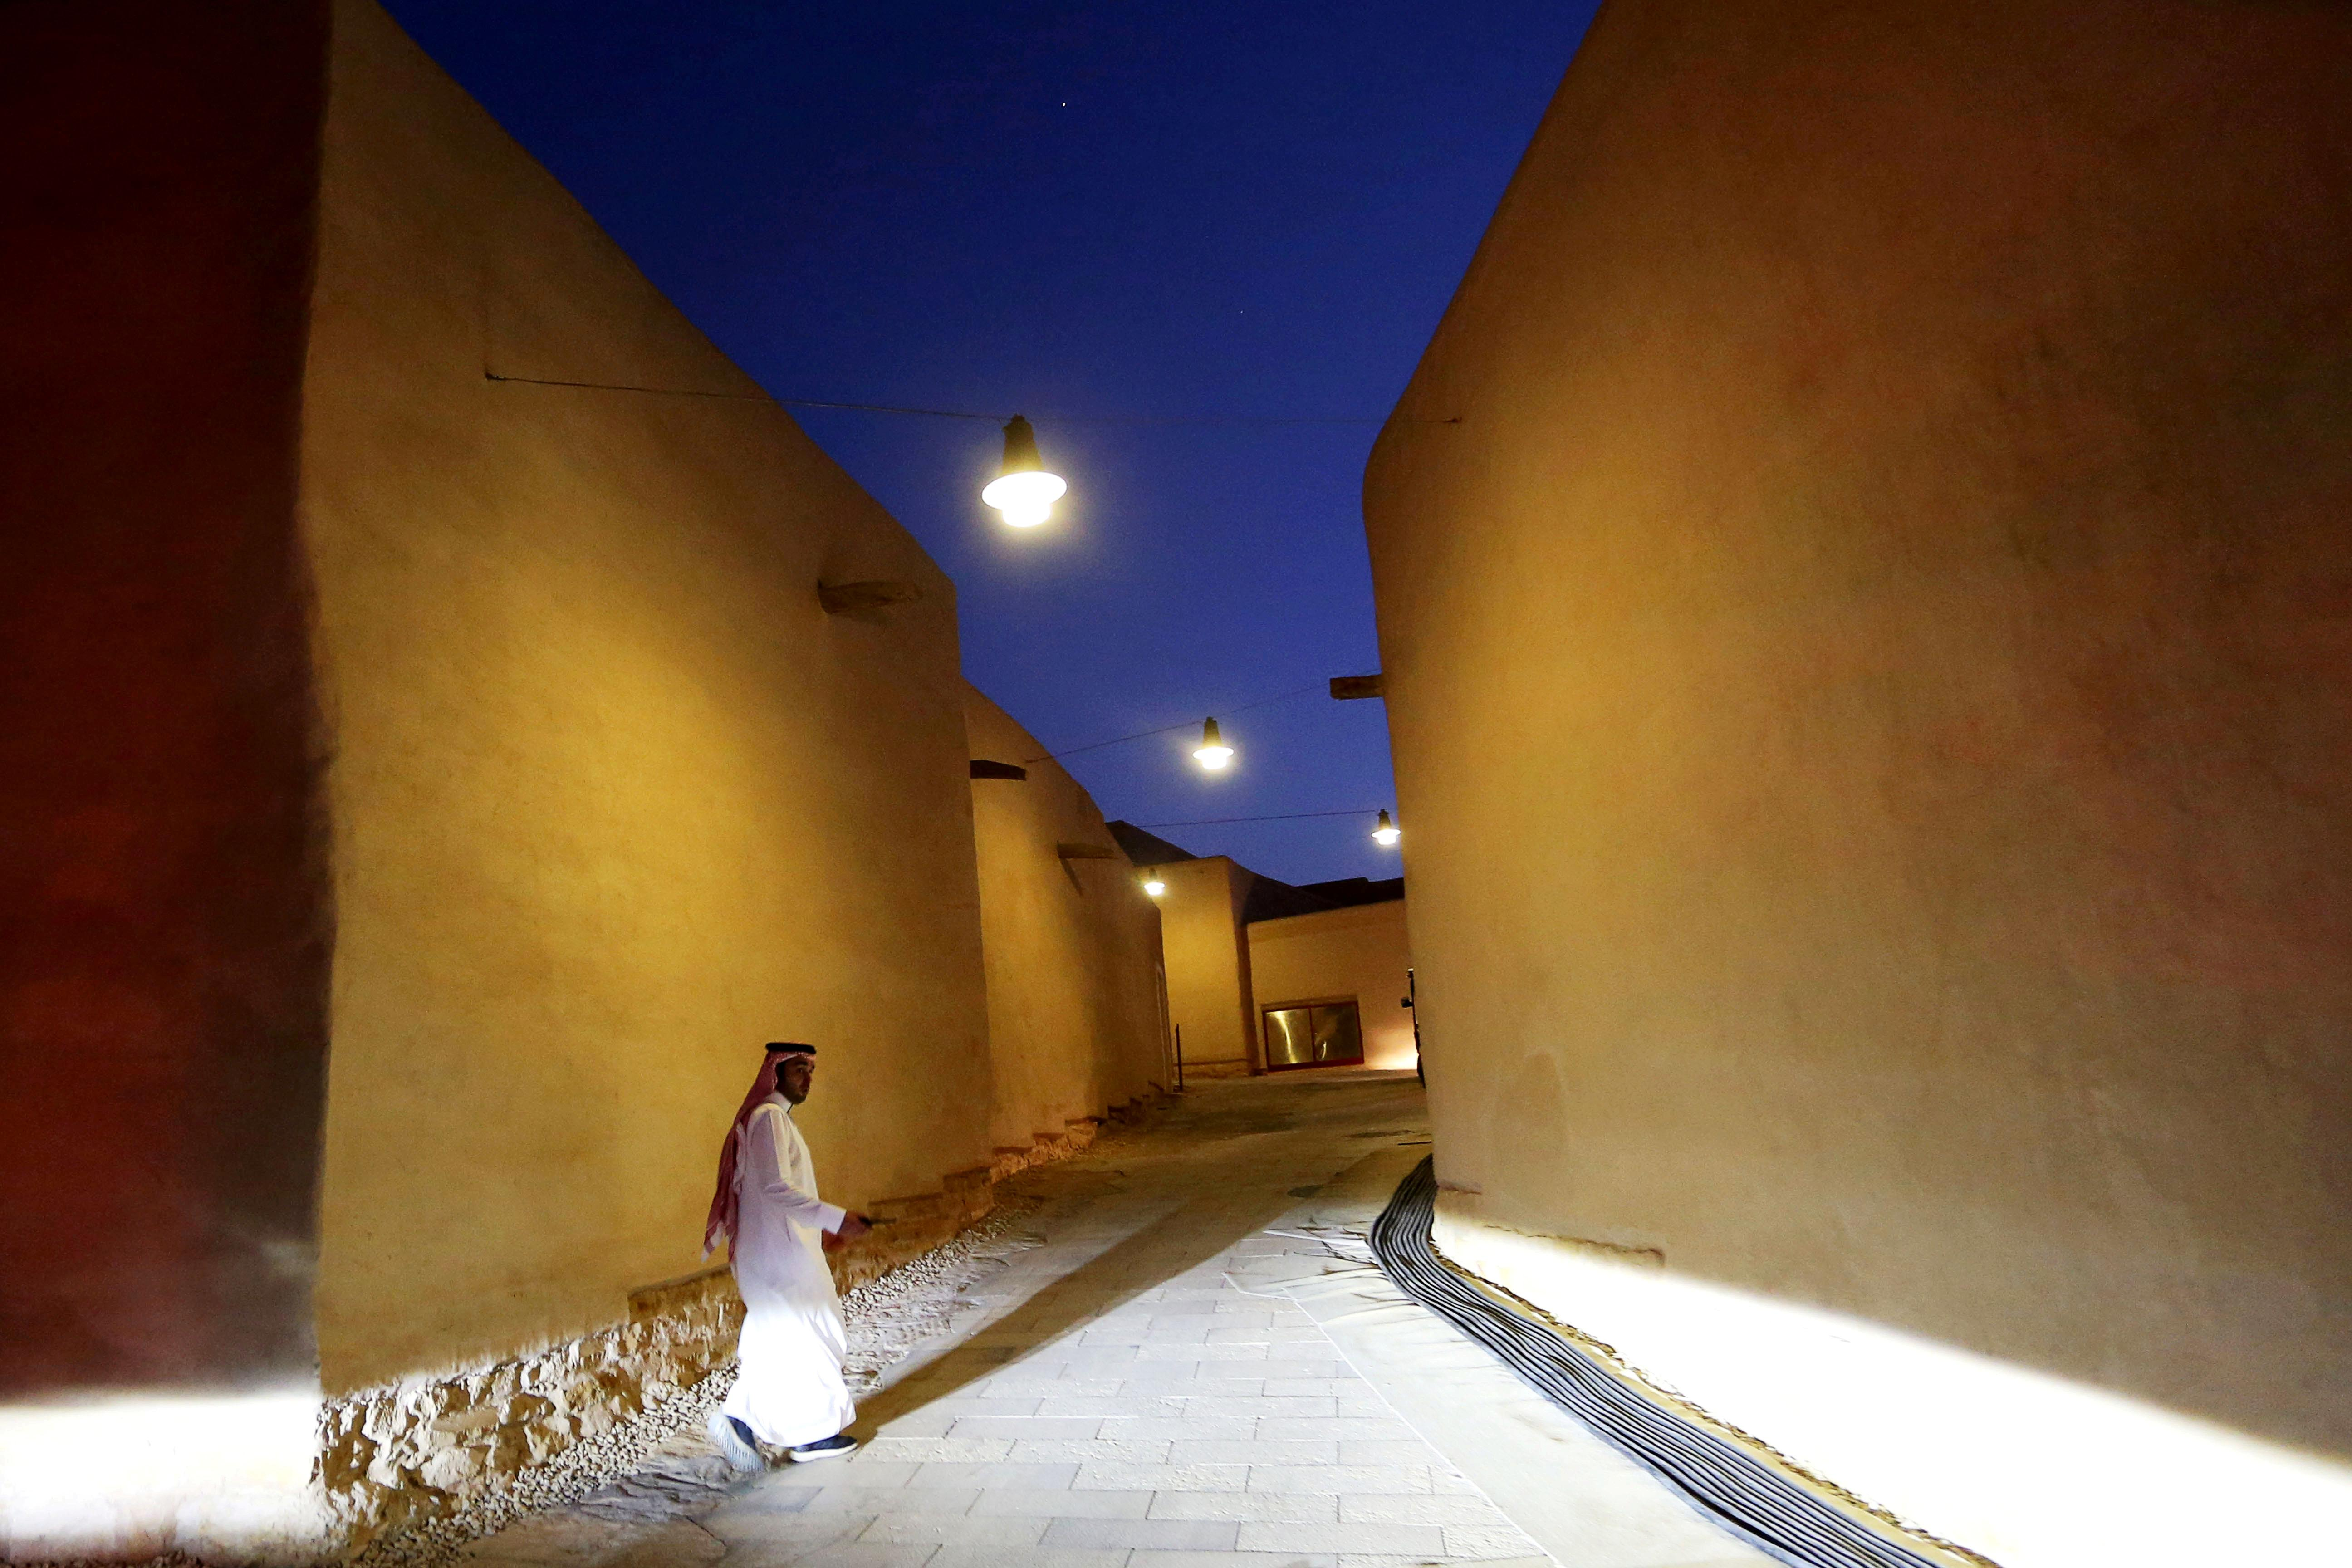 Saudi Arabia allows foreign men and women to share hotel rooms